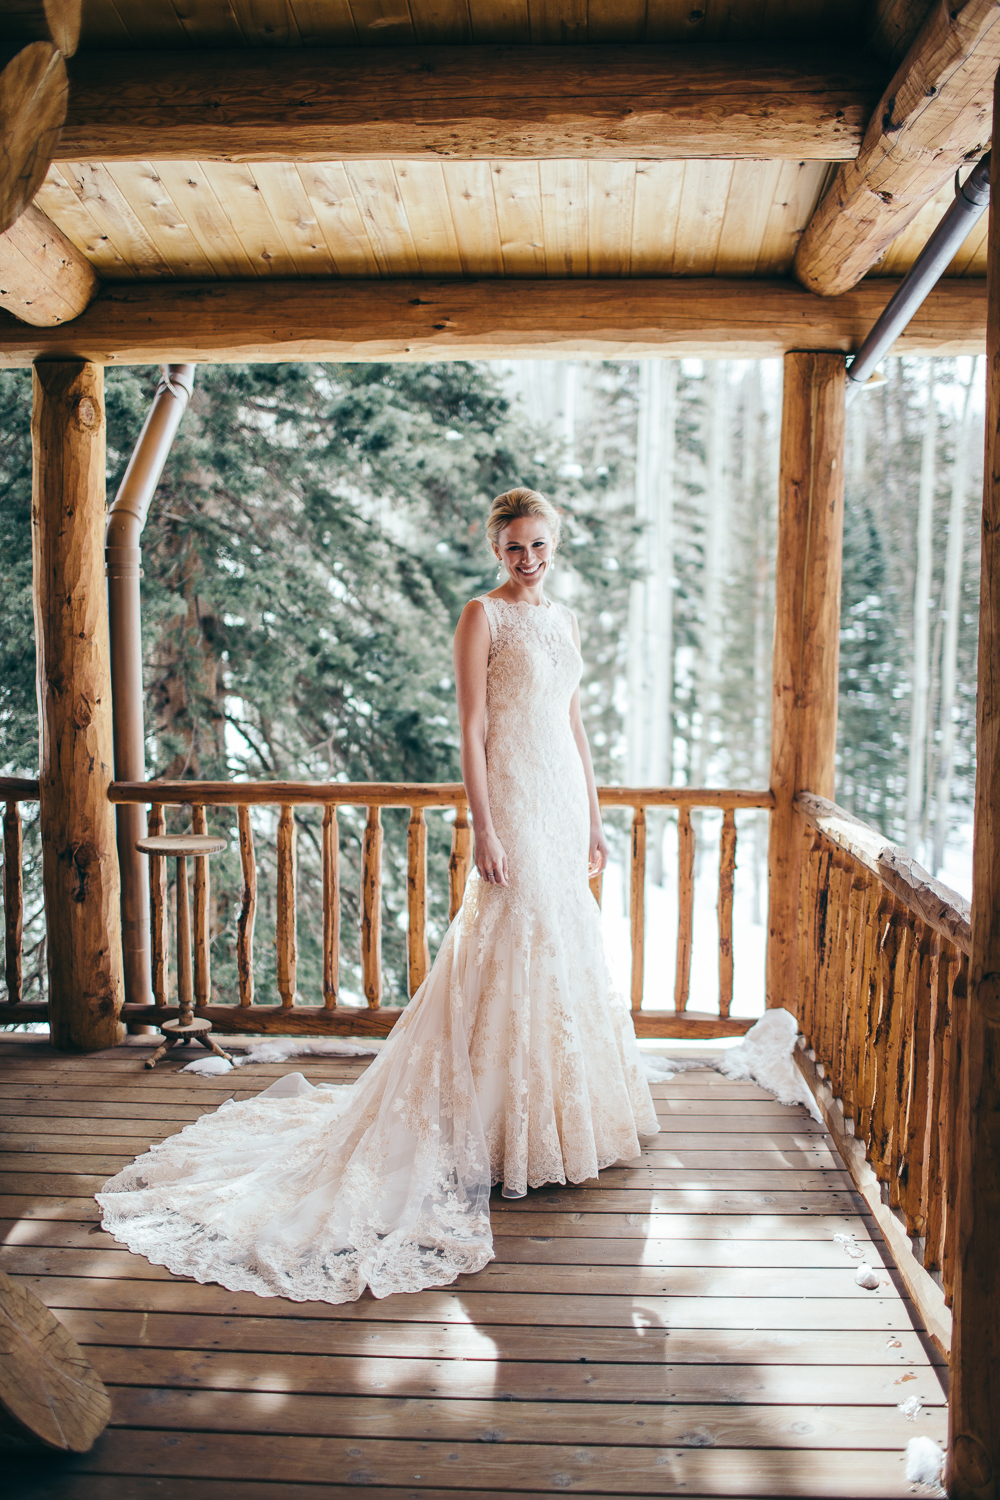 Abie Livesay Photography - San Sophia Wedding - Telluride Wedding Photographer - Dykema Braun Wedding-200.jpg